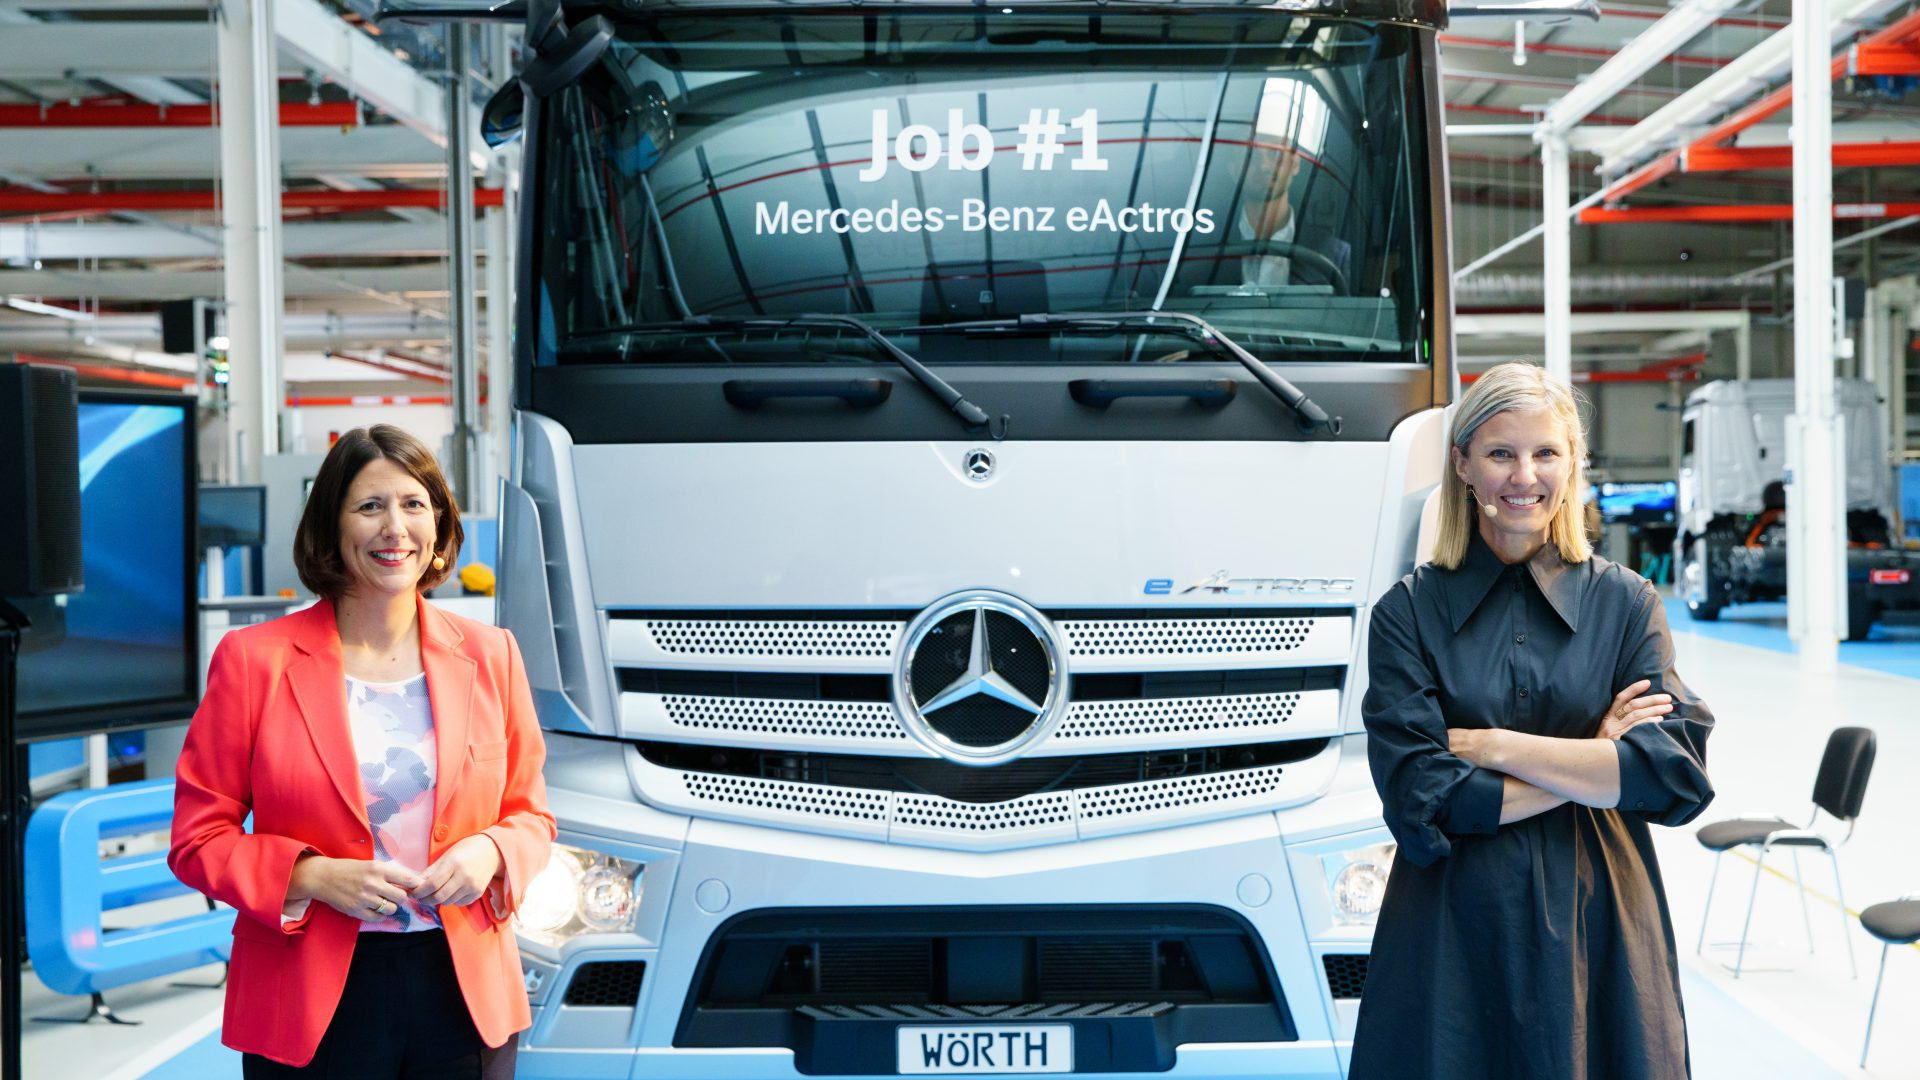 eactros series production